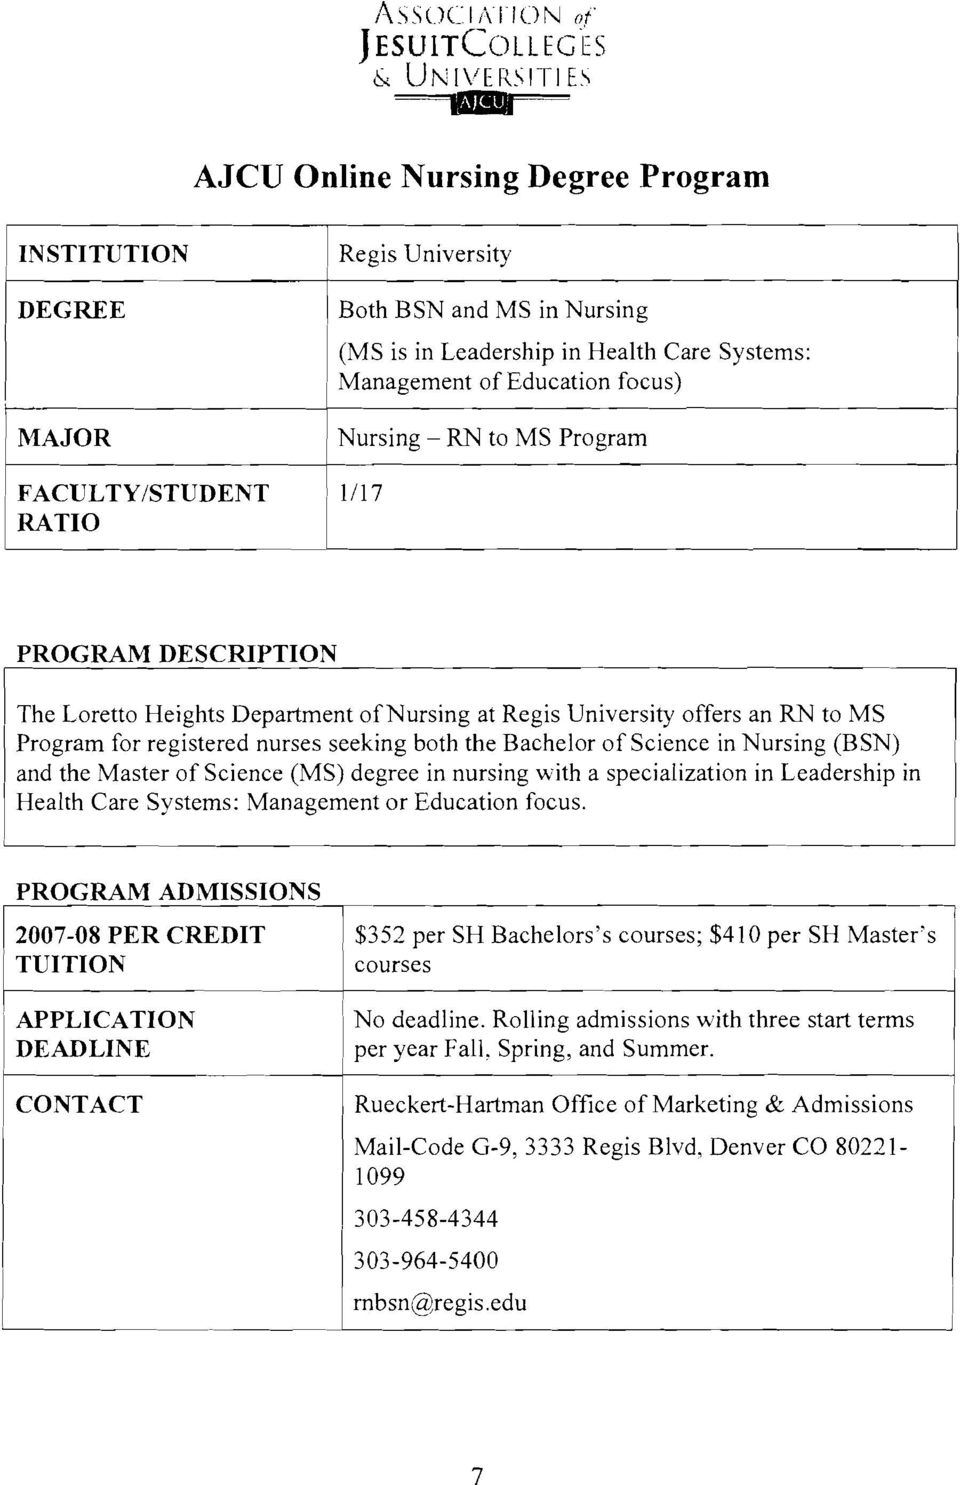 focus) MAJOR Nursing RN to MS Program FACULTY/STUDENT RATO 1/17 PROGRAM DESCRPTON,-1 The Loretto Heights Department ofnursing at Regis University offers an RN to MS Program for registered nurses